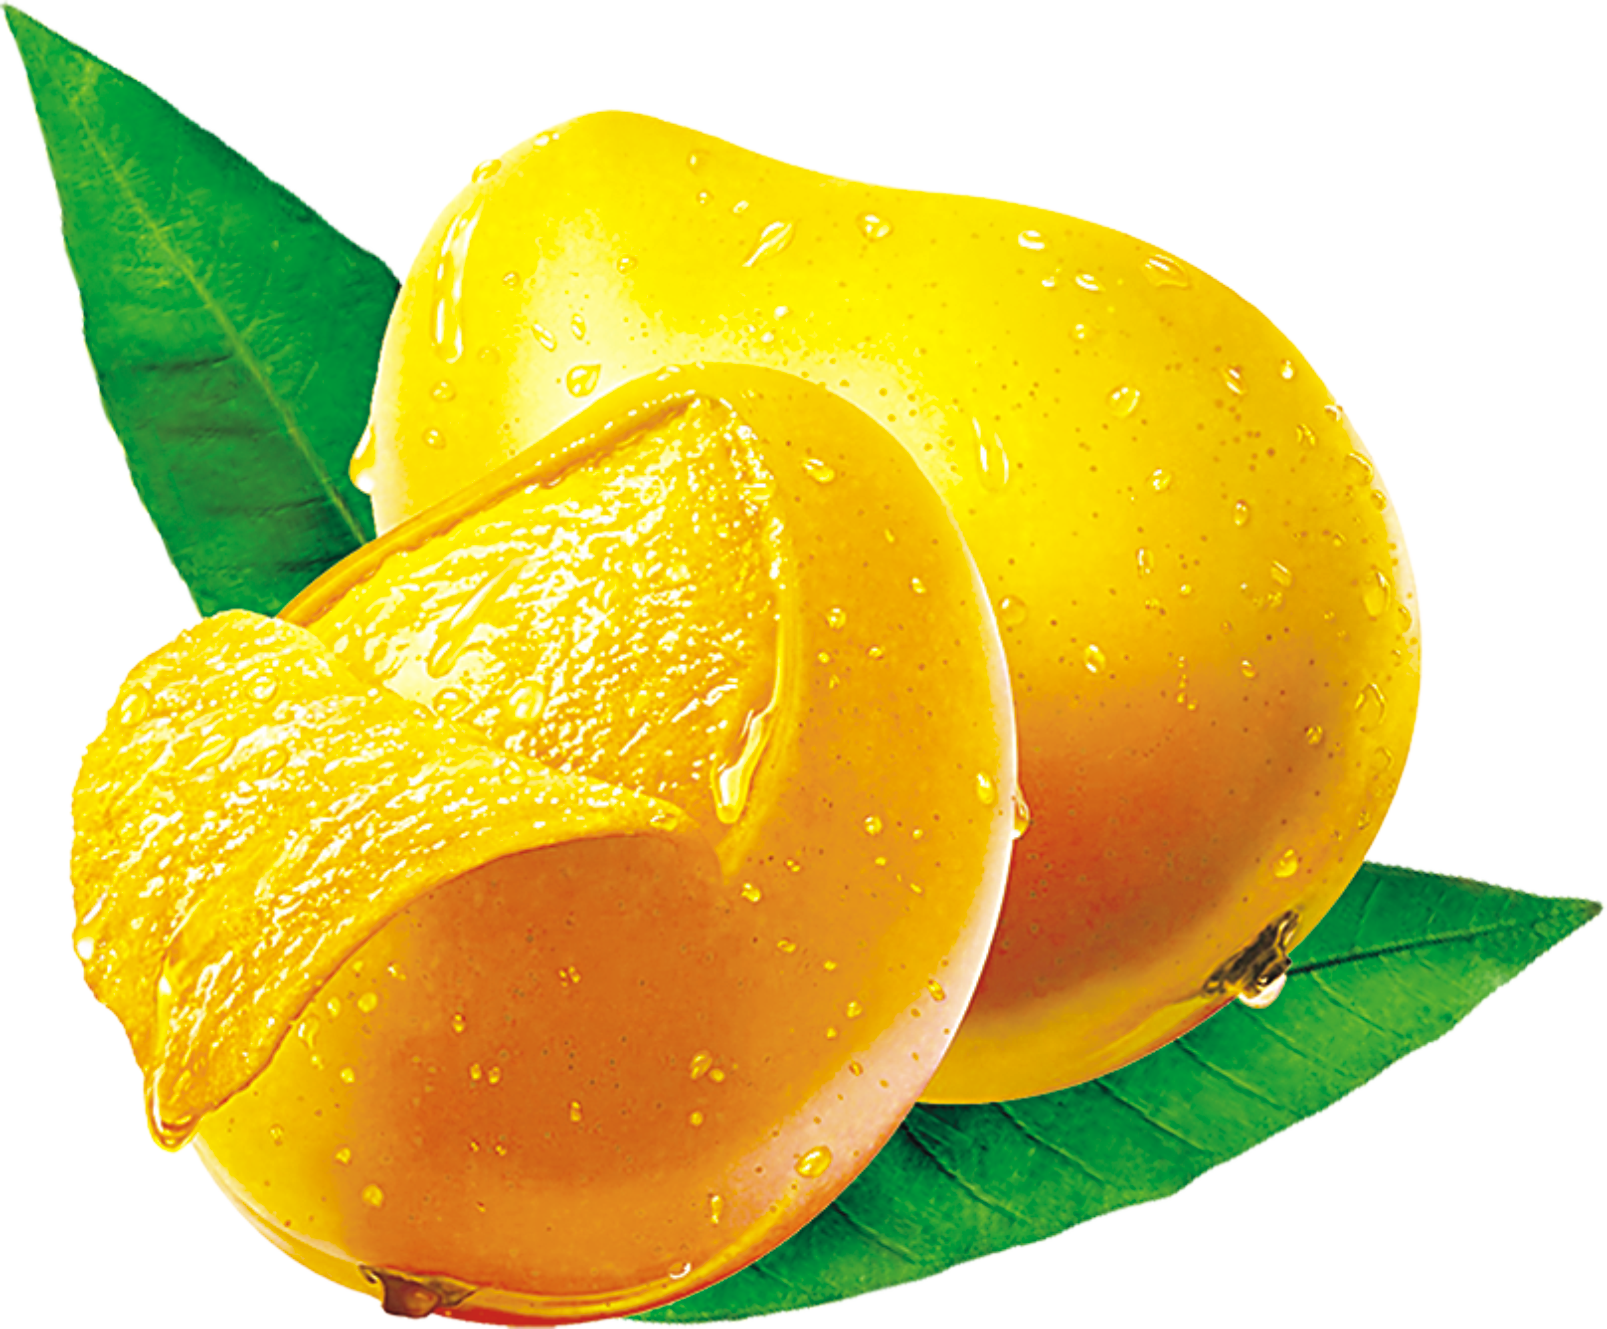 Mango PNG Images Transparent Free Download.